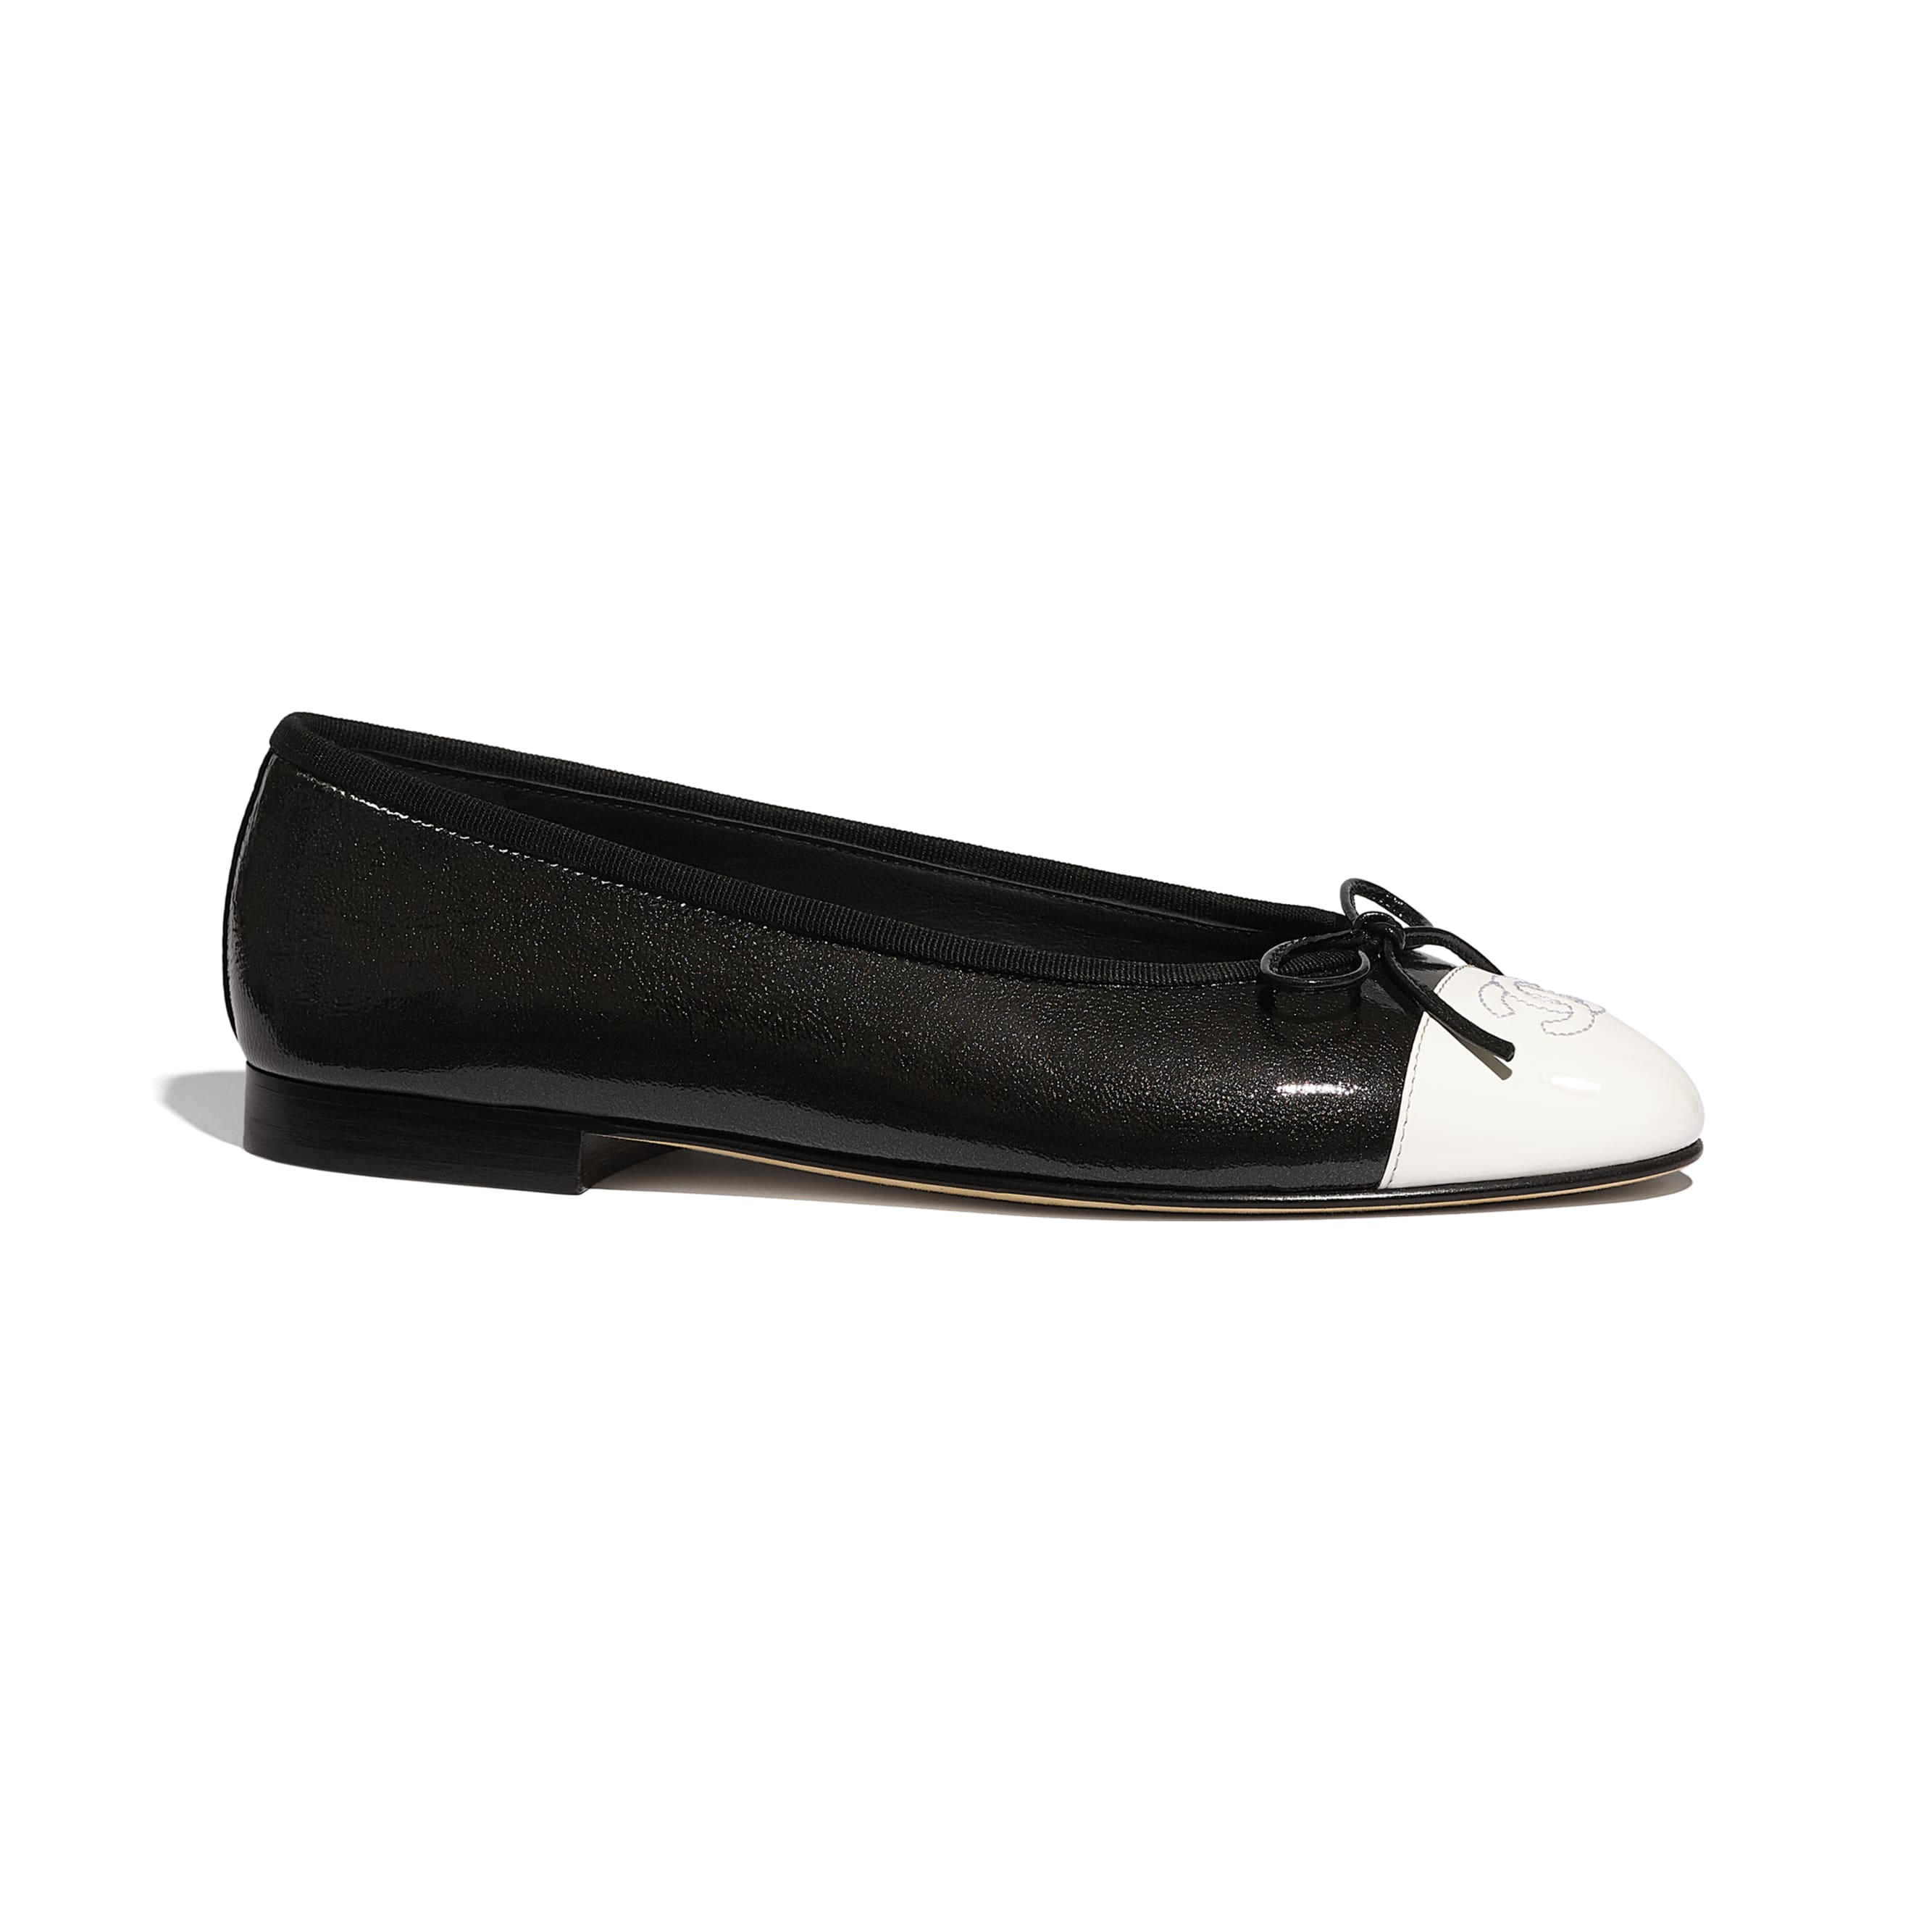 Flats - Black & White - Shiny Goatskin & Patent Calfskin - Default view - see standard sized version